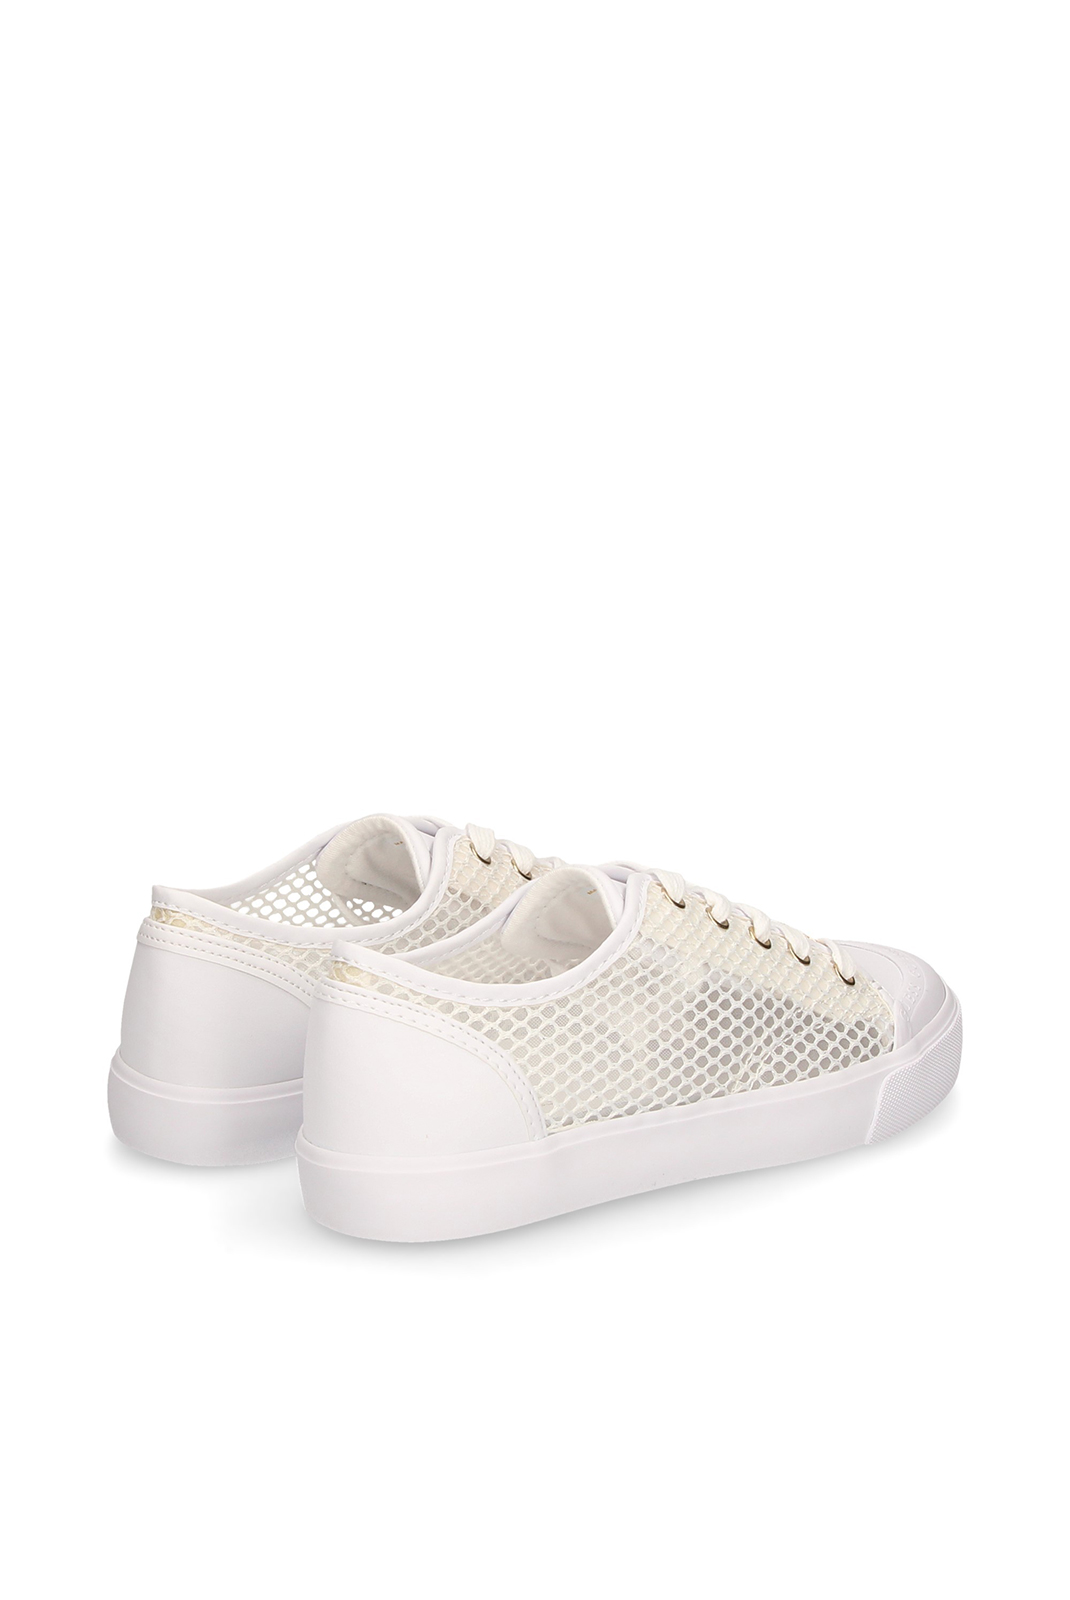 Baskets / Sneakers  Guess jeans FL6GI4 FAB12 WHITE